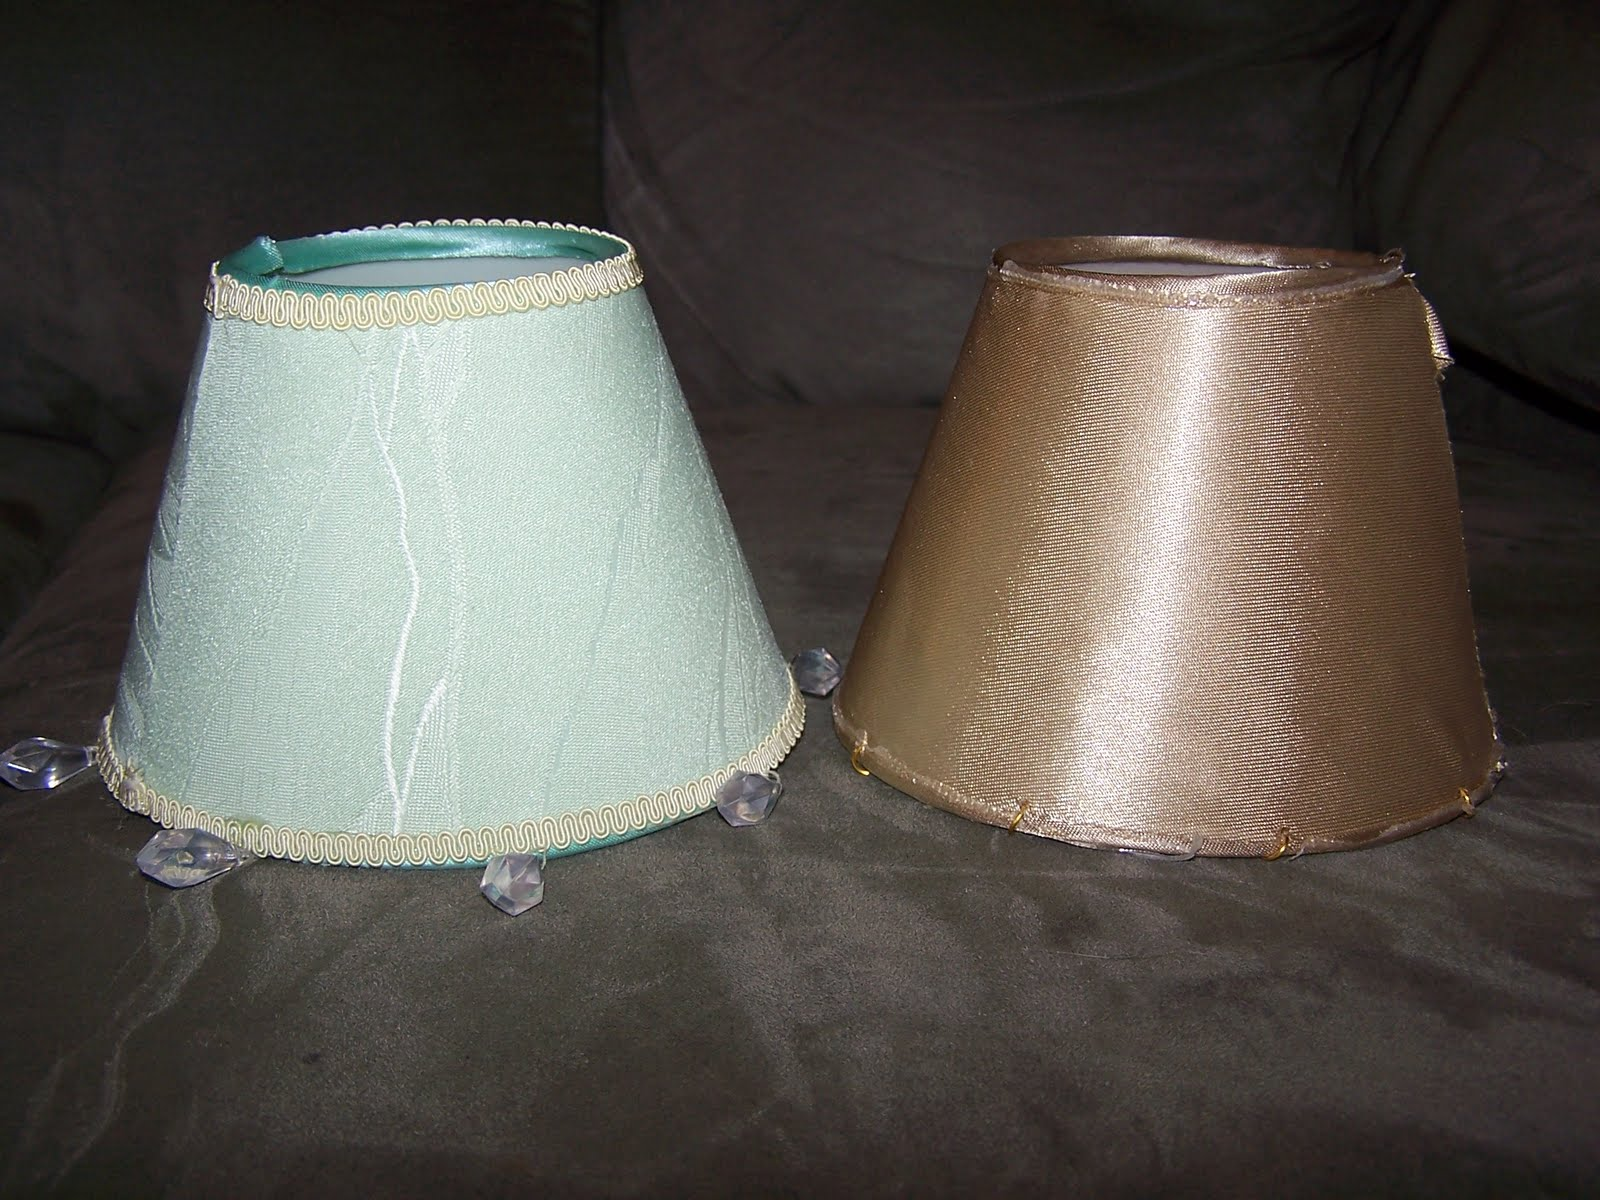 Fantastic flores family lamp shades the dollar store craft challenge aloadofball Image collections